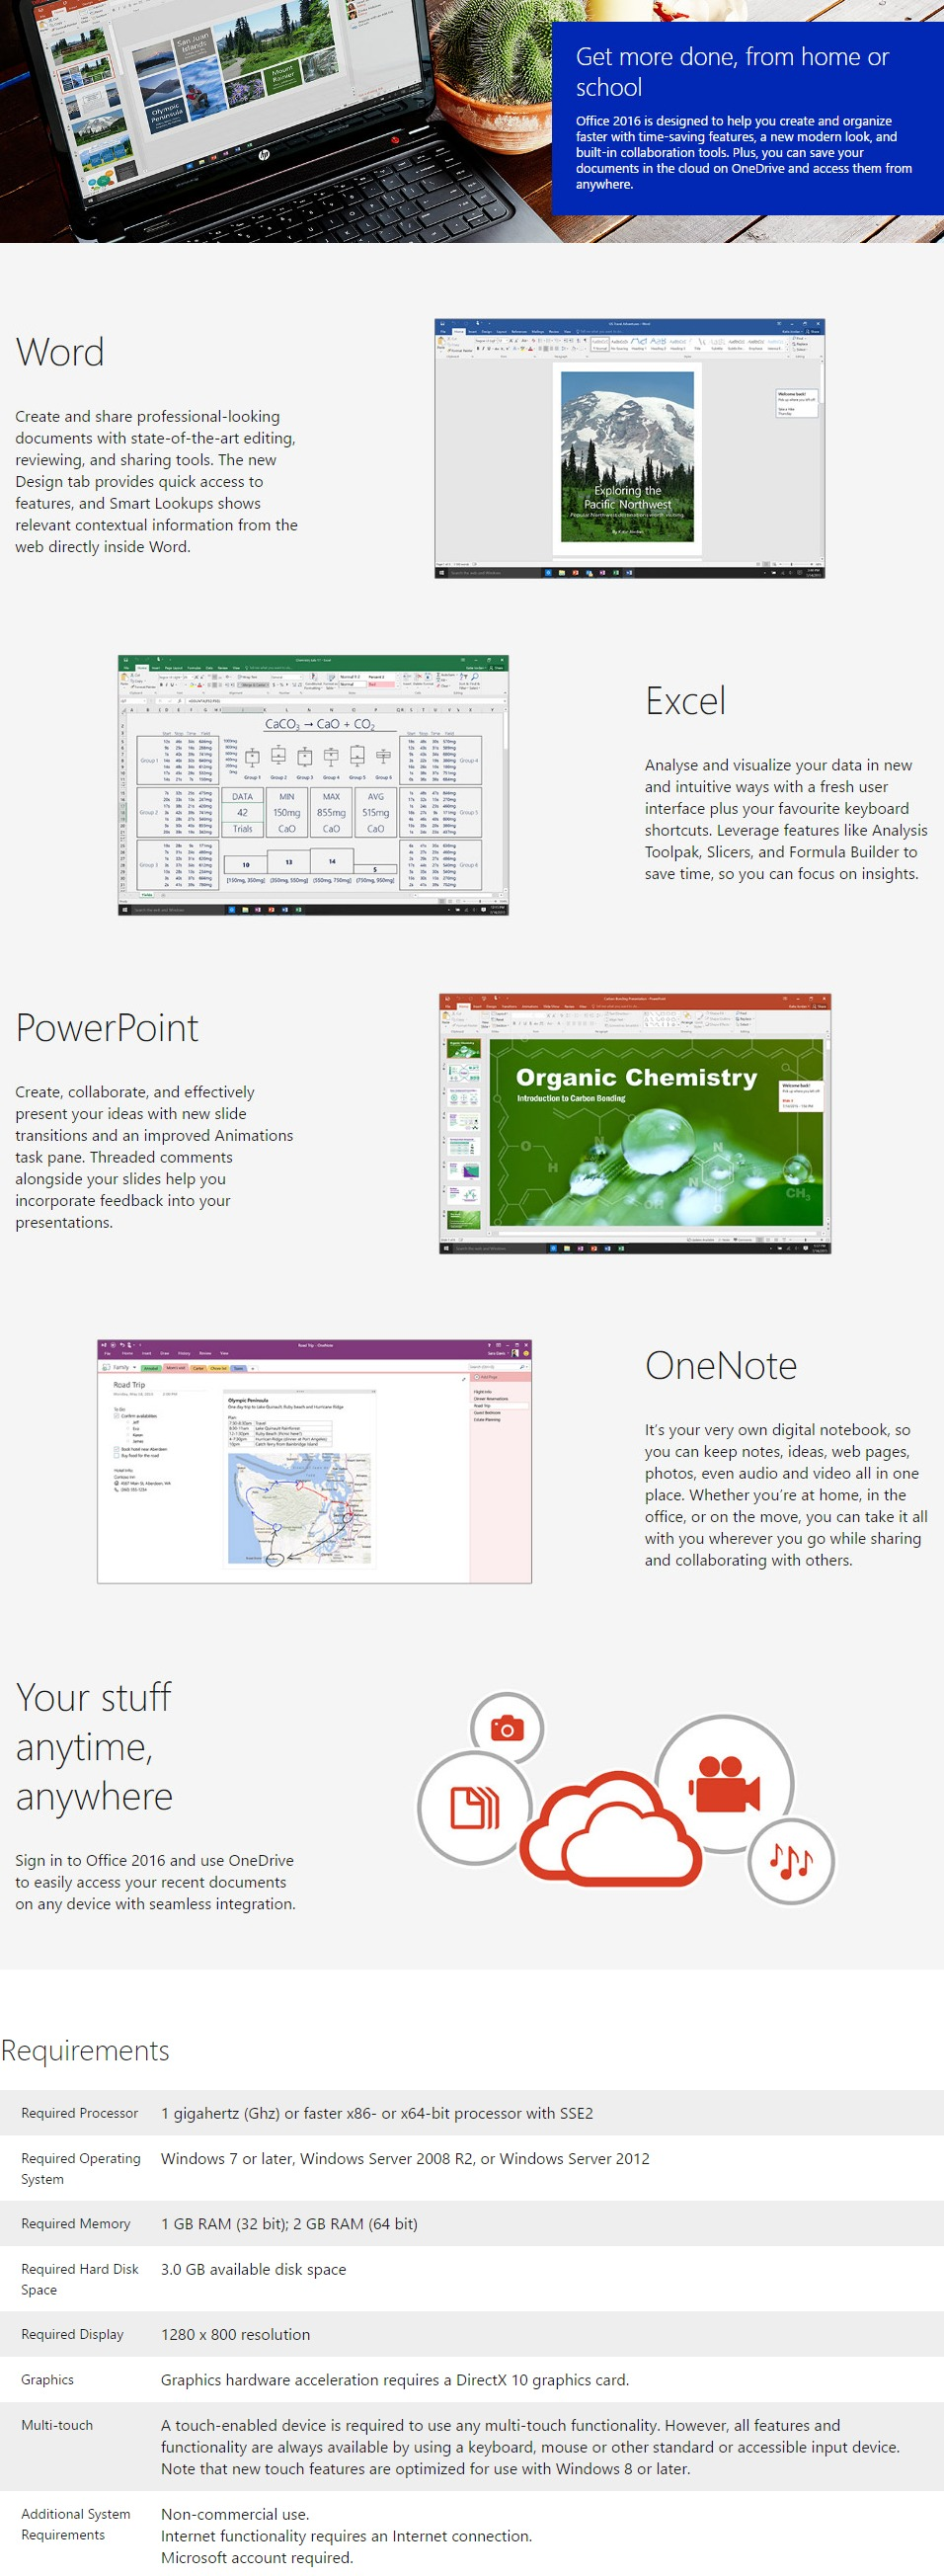 microsoft office home and business 2016 multi user